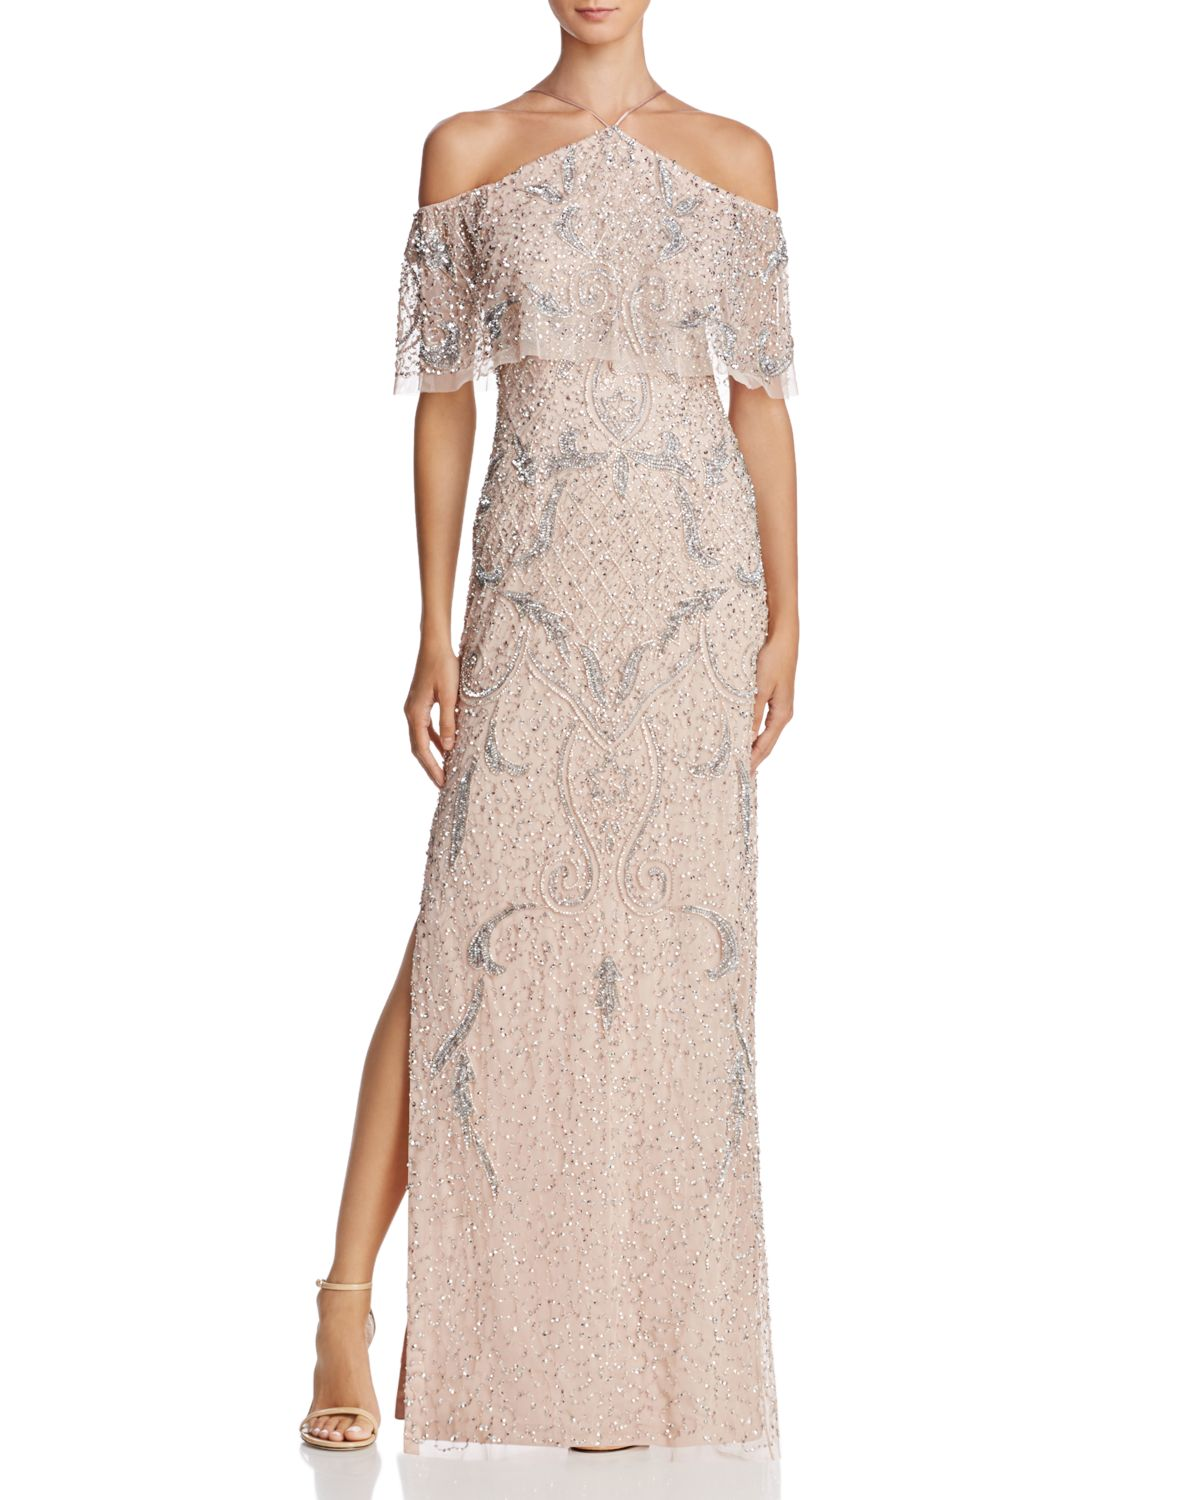 Cold Shoulder Beaded Gown   100 Percents Exclusive by Aidan Mattox